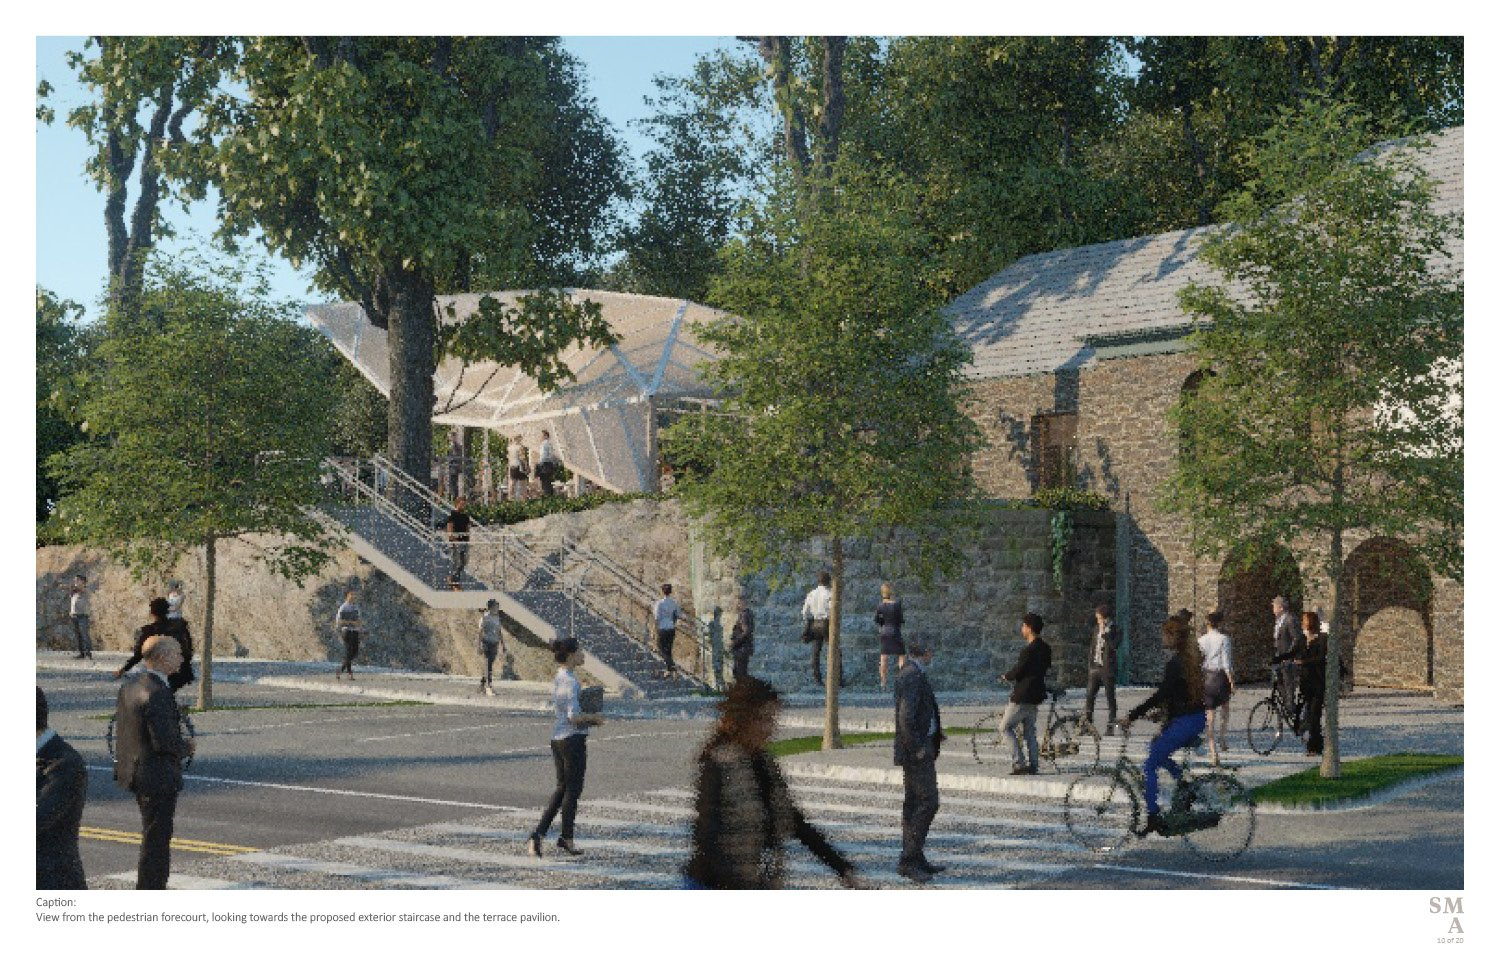 View from the pedestrian forecourt, looking towards the proposed exterior staircase and the terrace pavilion. SMA | Stephen Moser Architect - Design Team